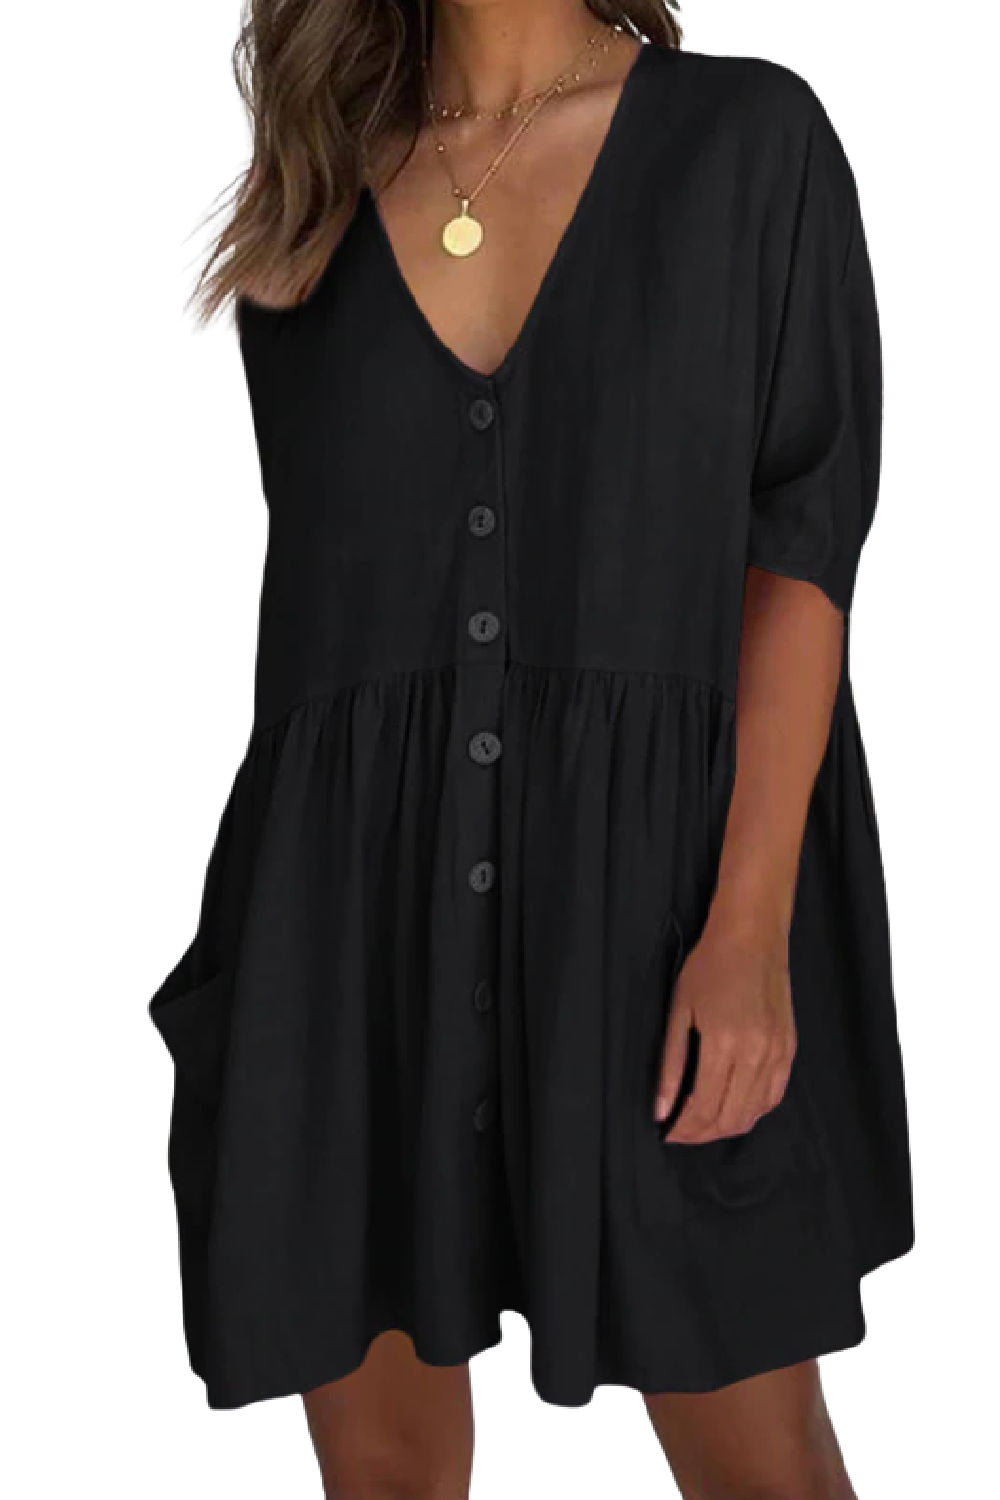 summer-beach-dress-black-cotton